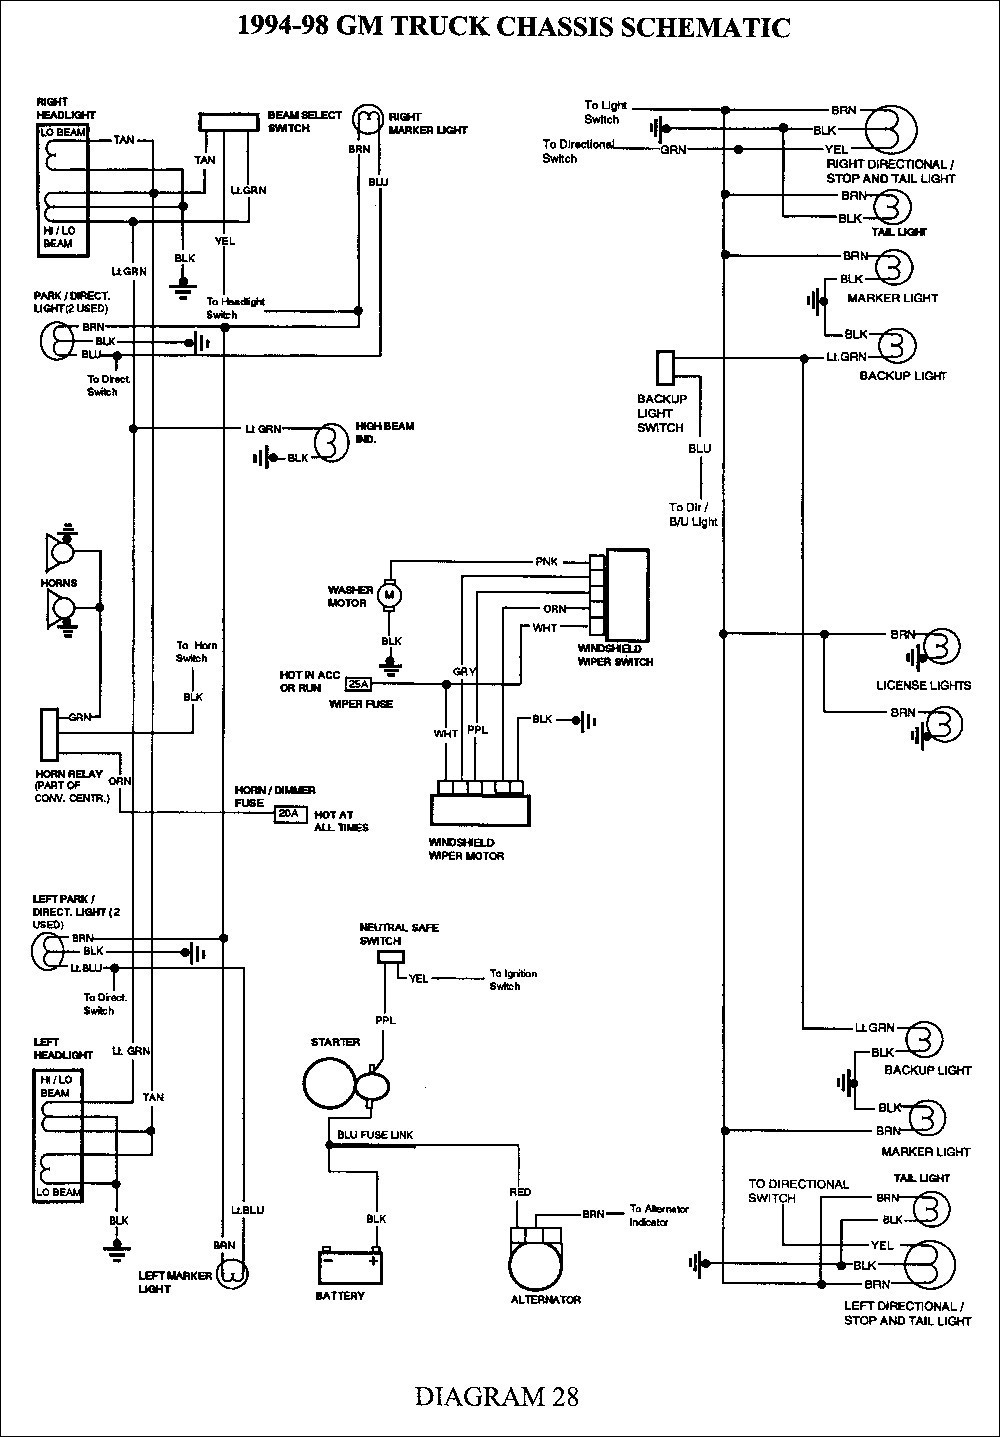 2005 Chevy Silverado Trailer Wiring Diagram | Trailer ...